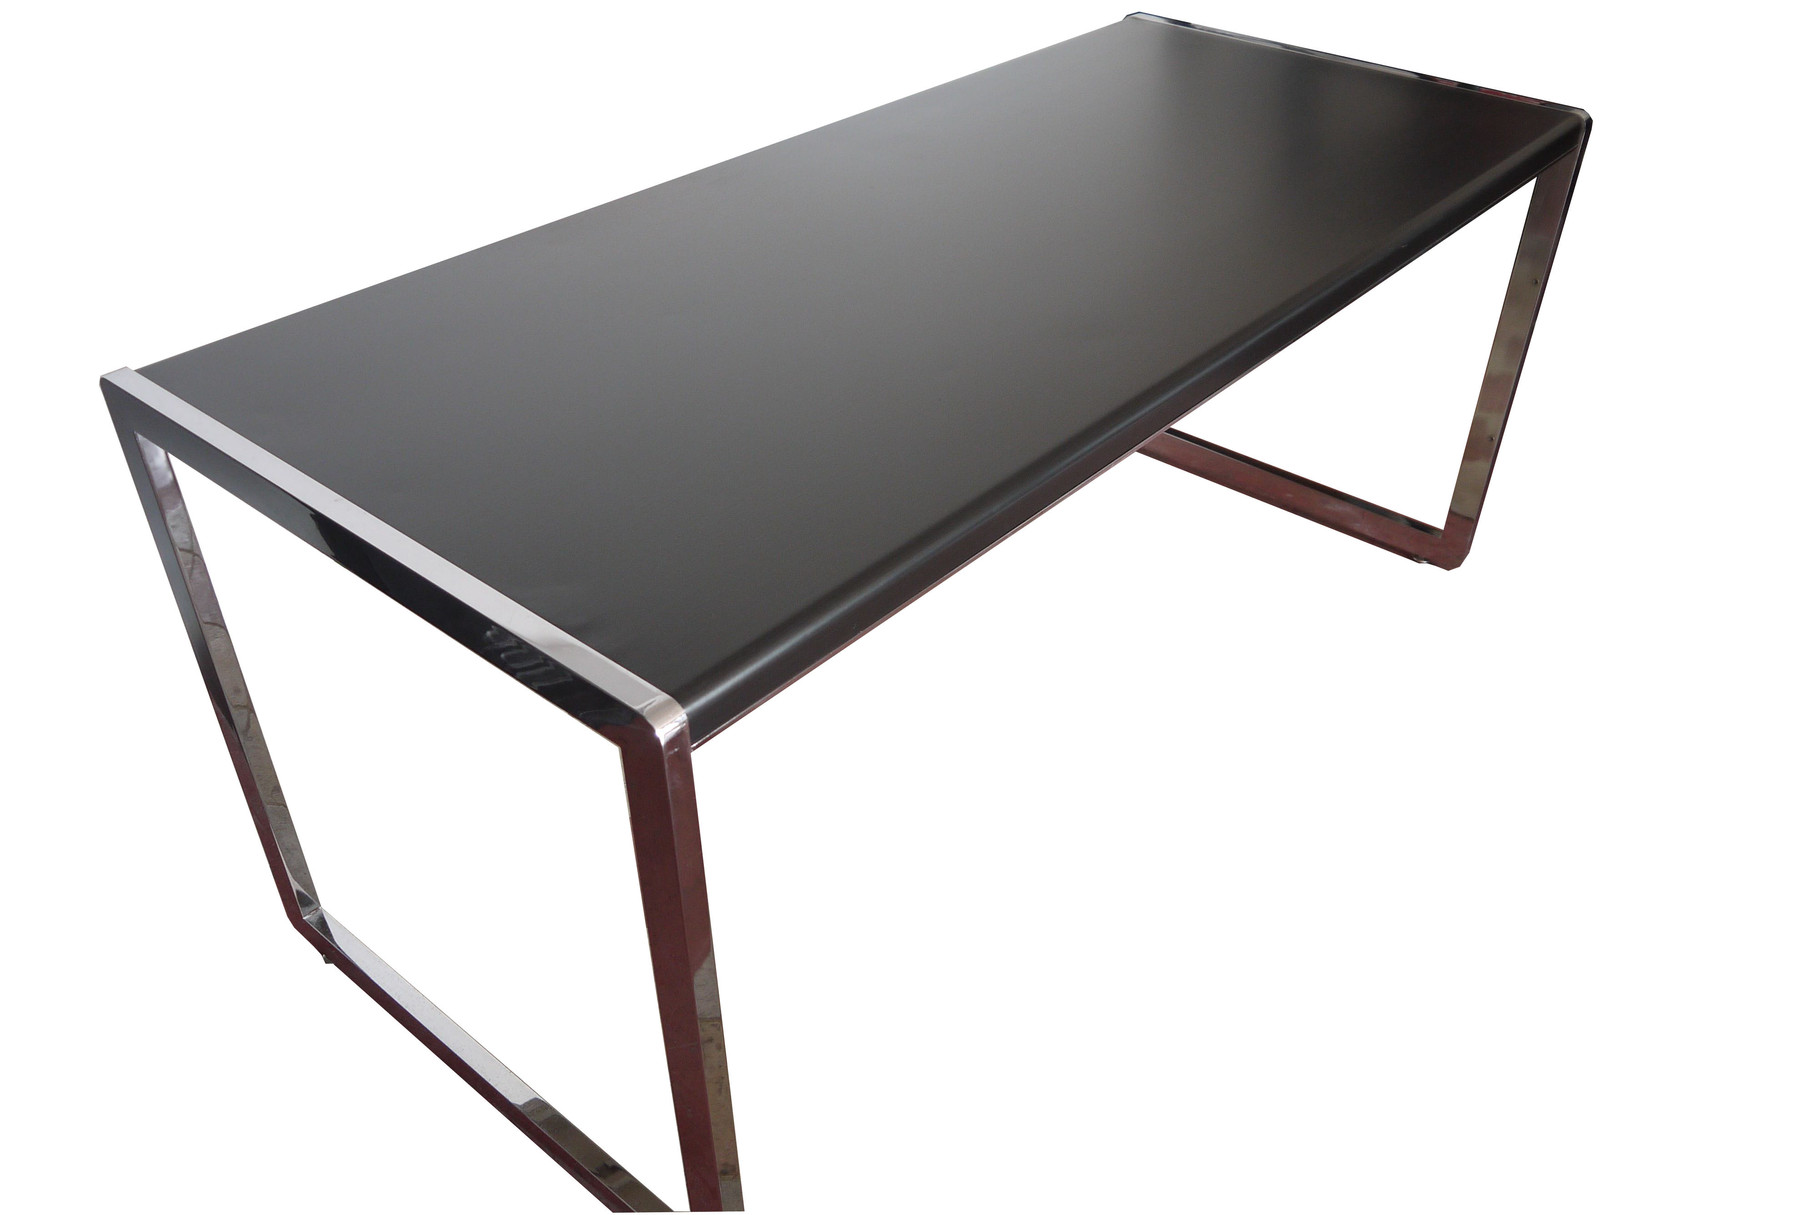 Table atelier vintage mobilier industriel lyon - Table atelier industriel ...